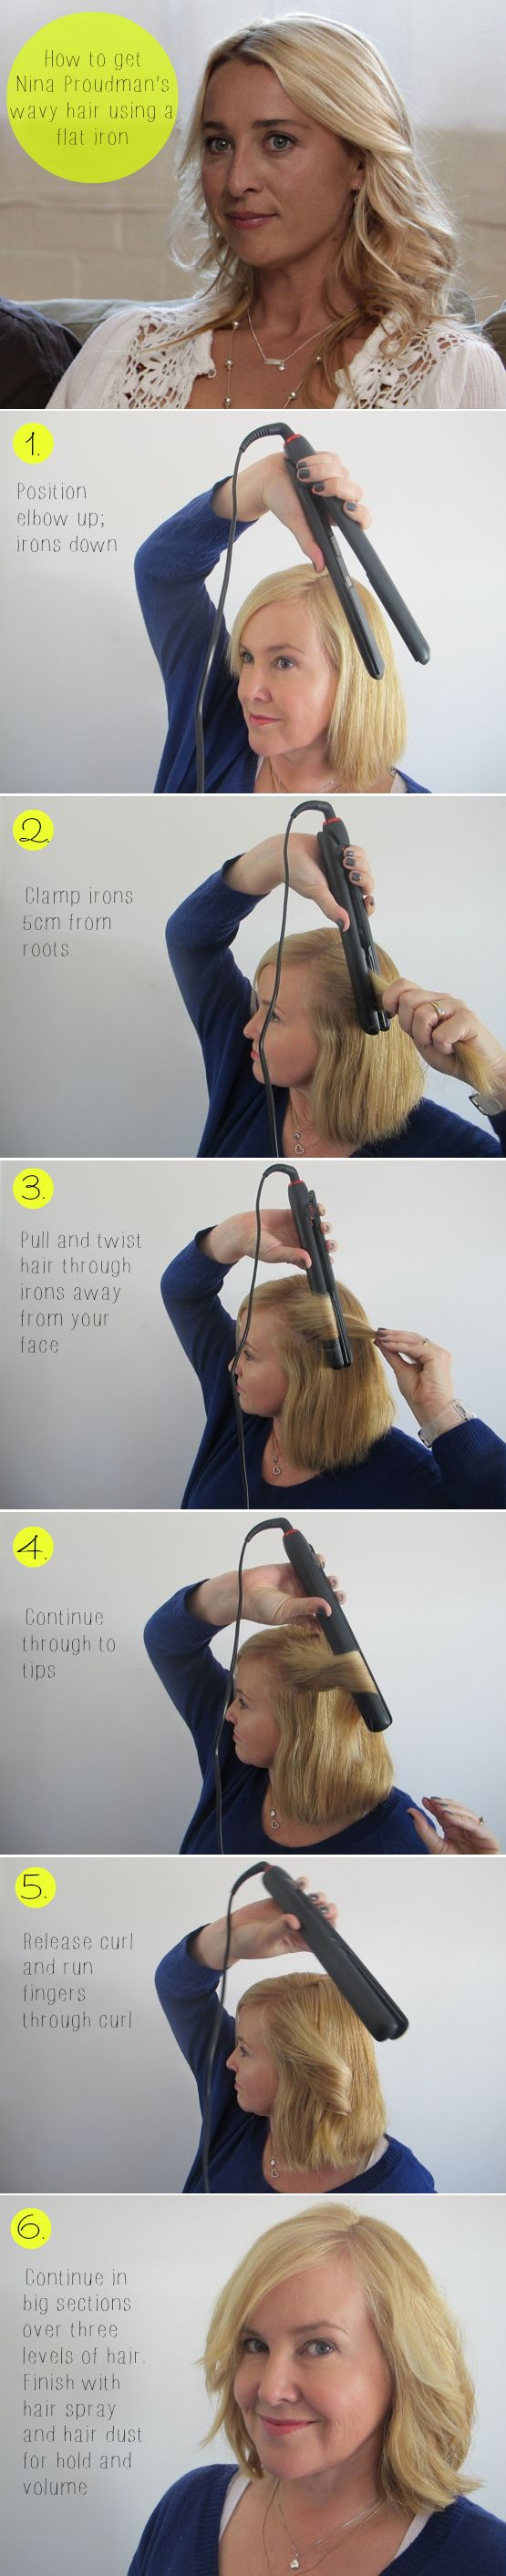 How to get Nina Proudman's wavy hair using a flat iron step by step